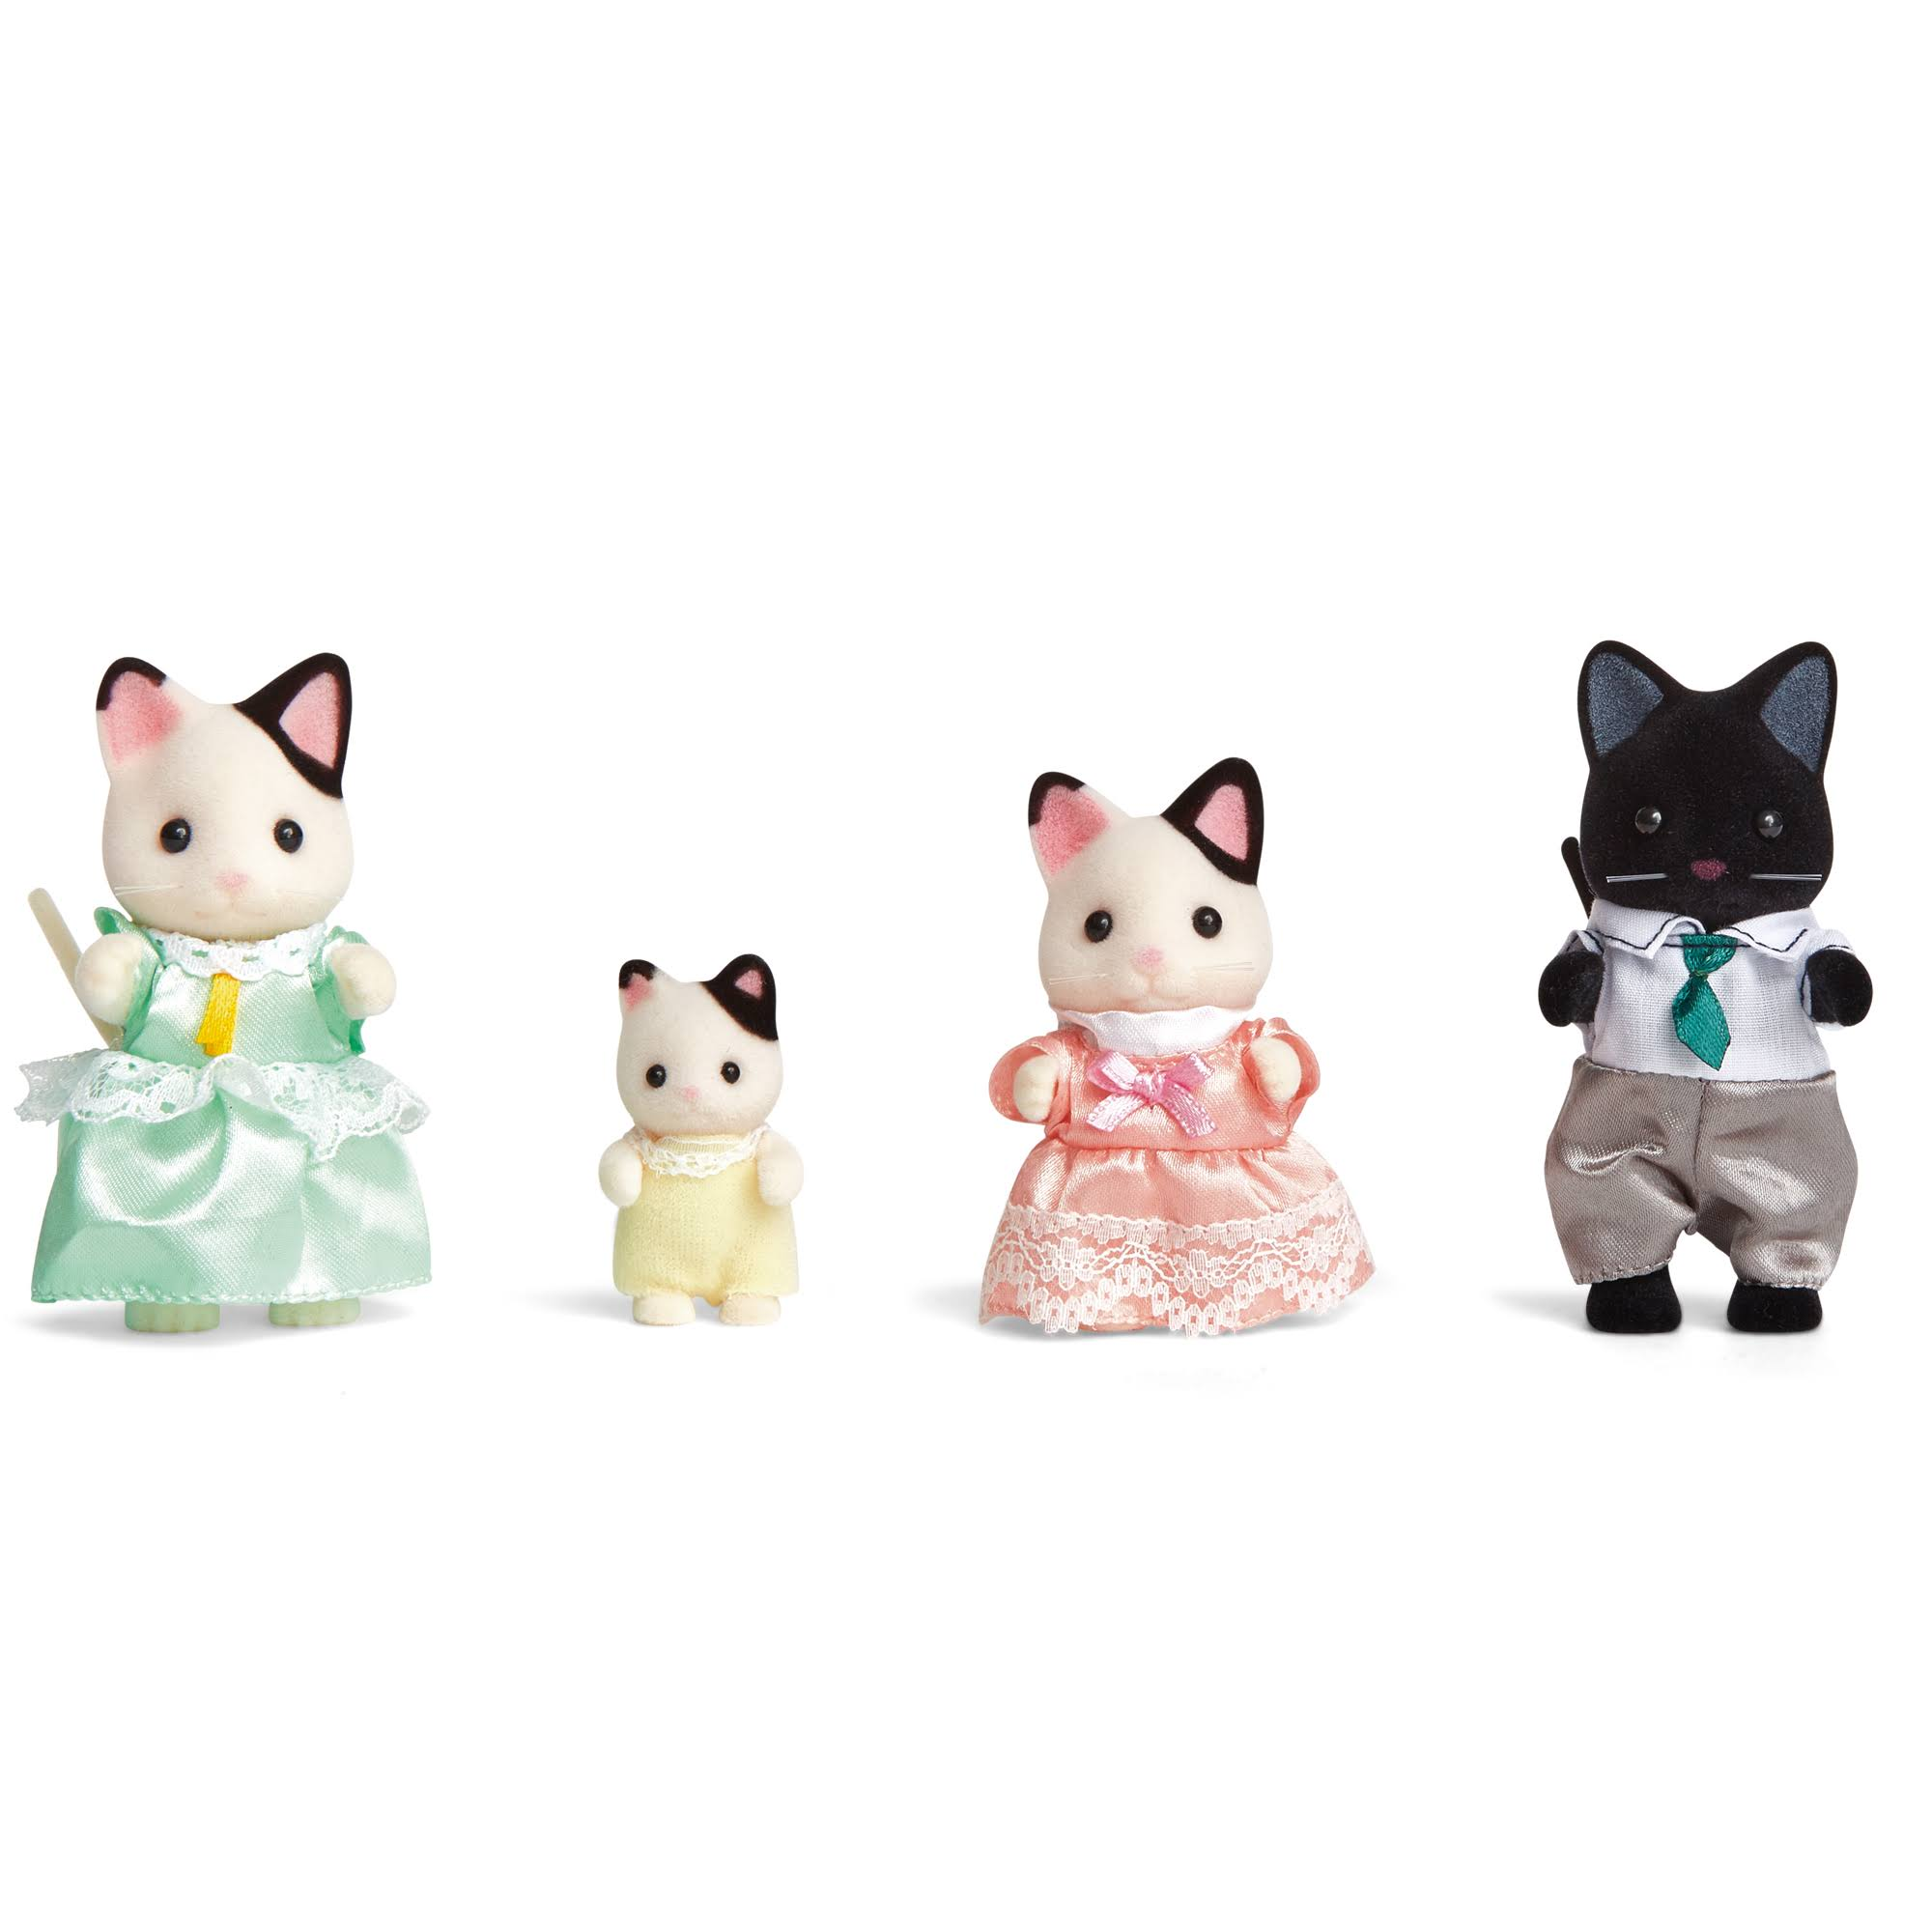 Calico Critters Tuxedo Cat Family Figure Set - 4pk